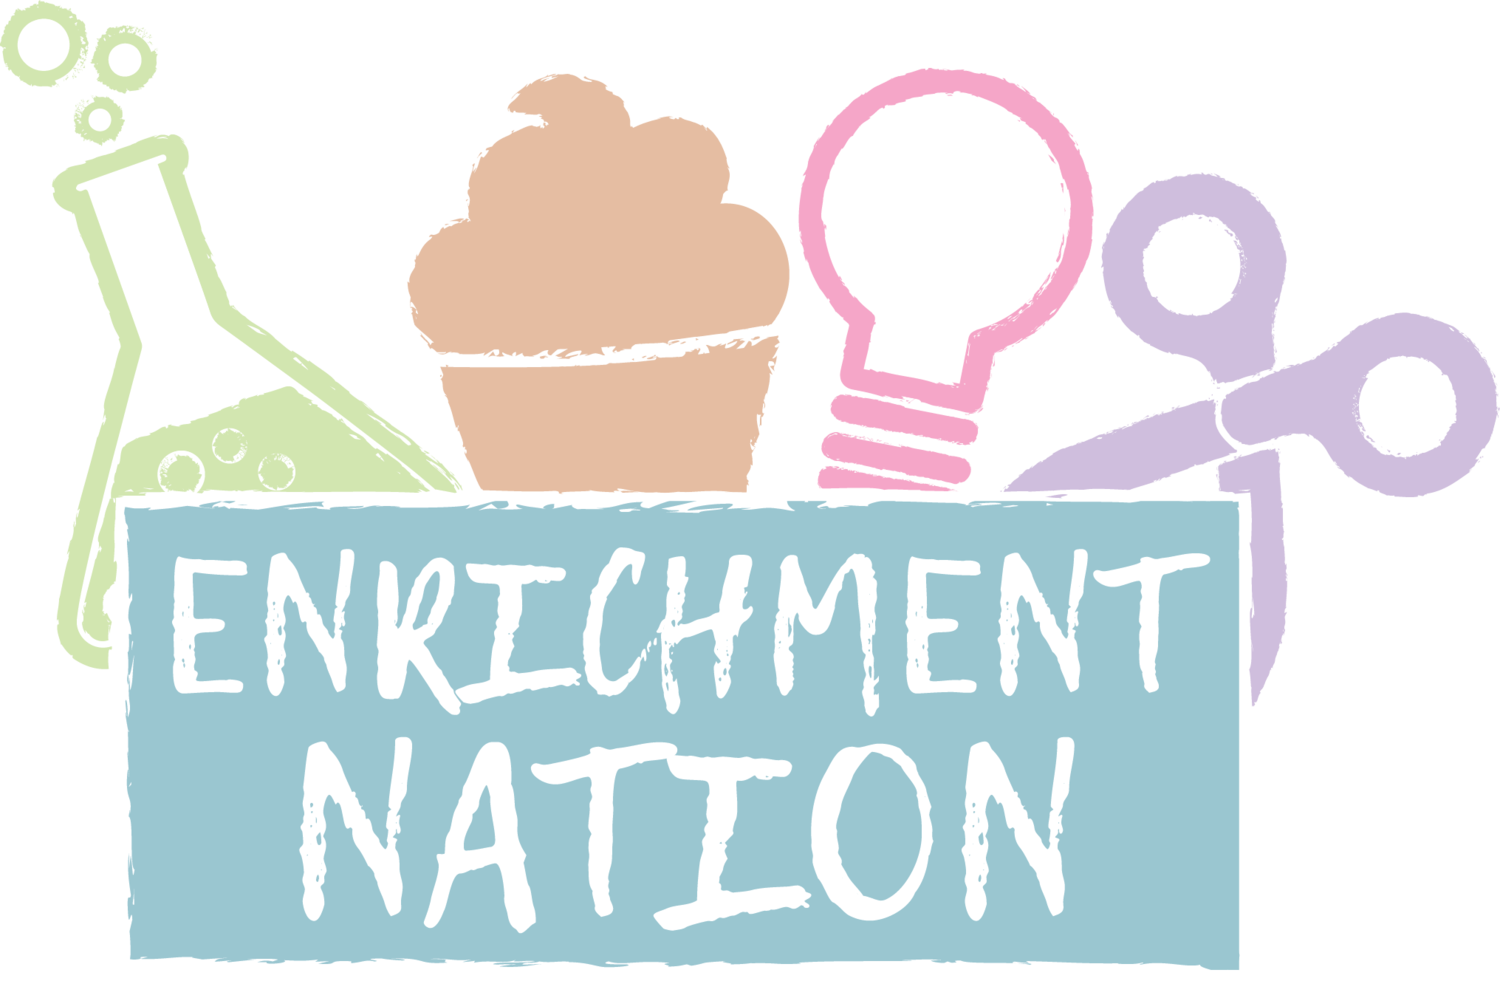 Enrichment Nation